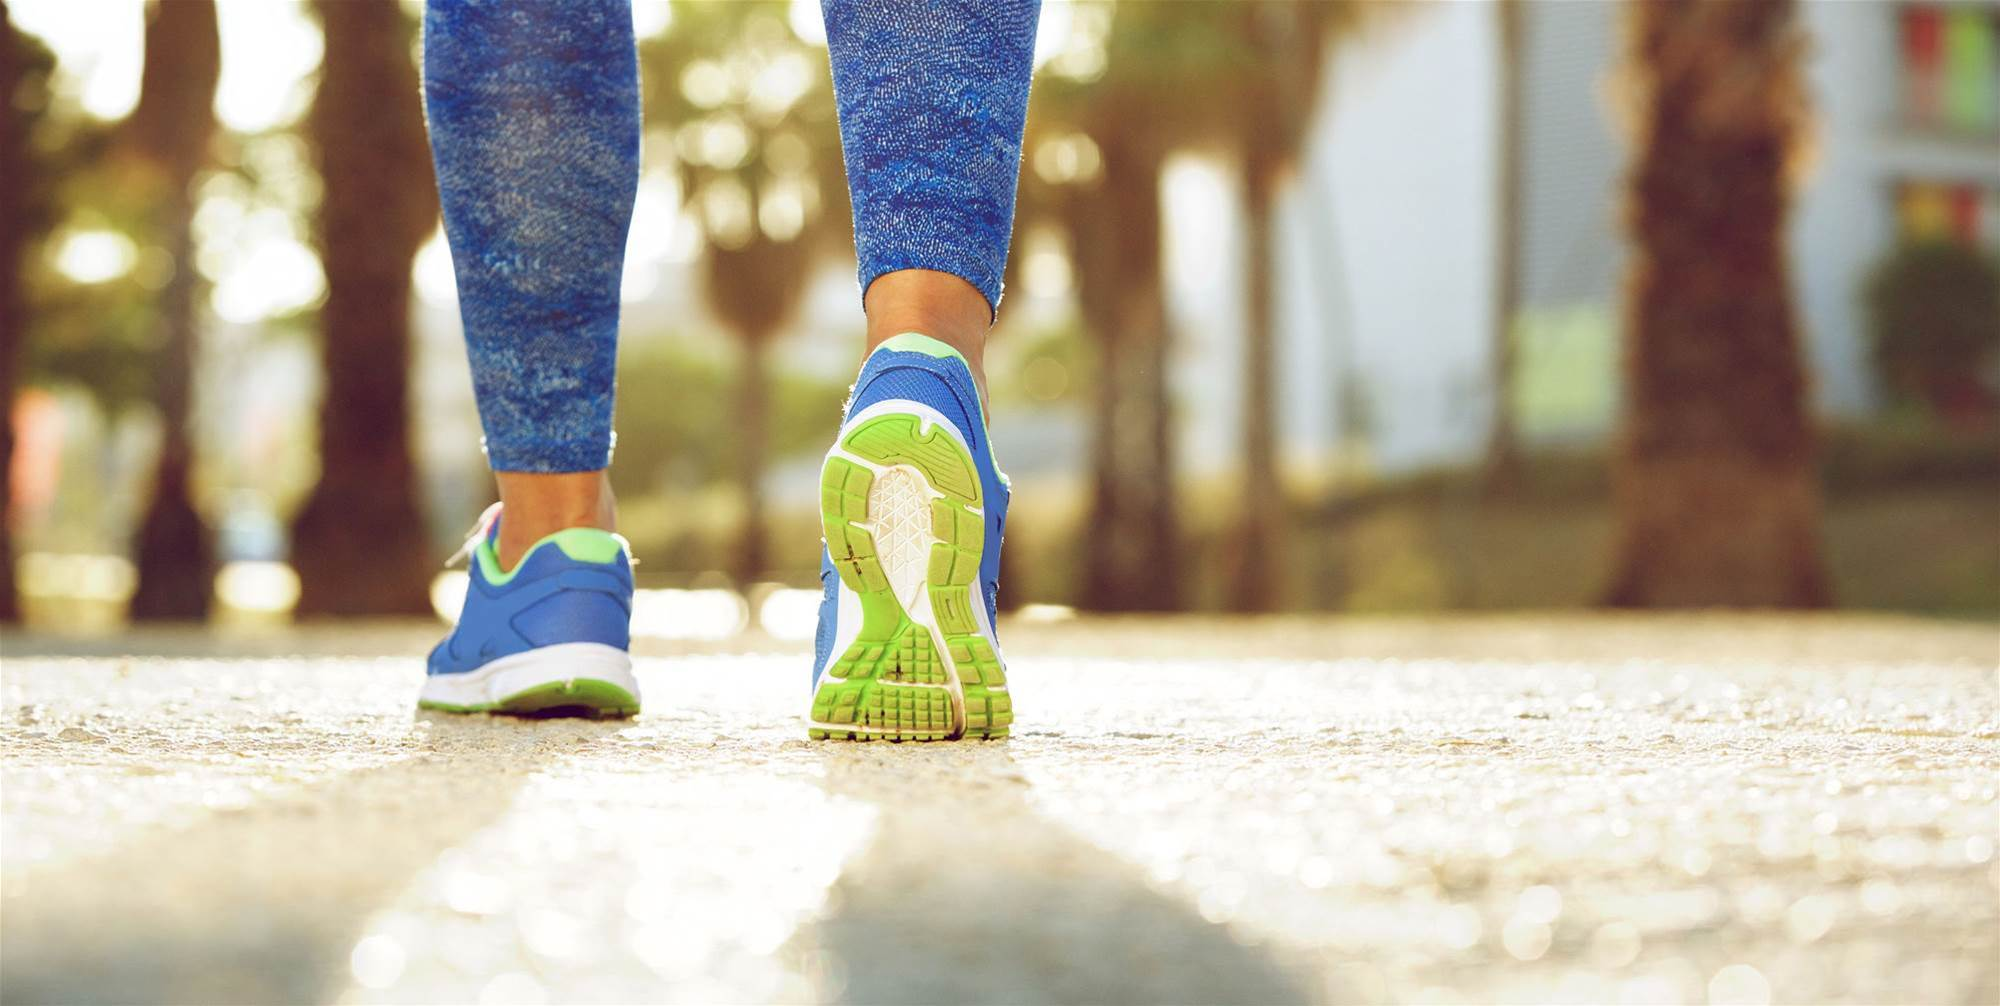 9 Power Walking Tips to Turn Your Stroll Into a kJ-Blasting Workout